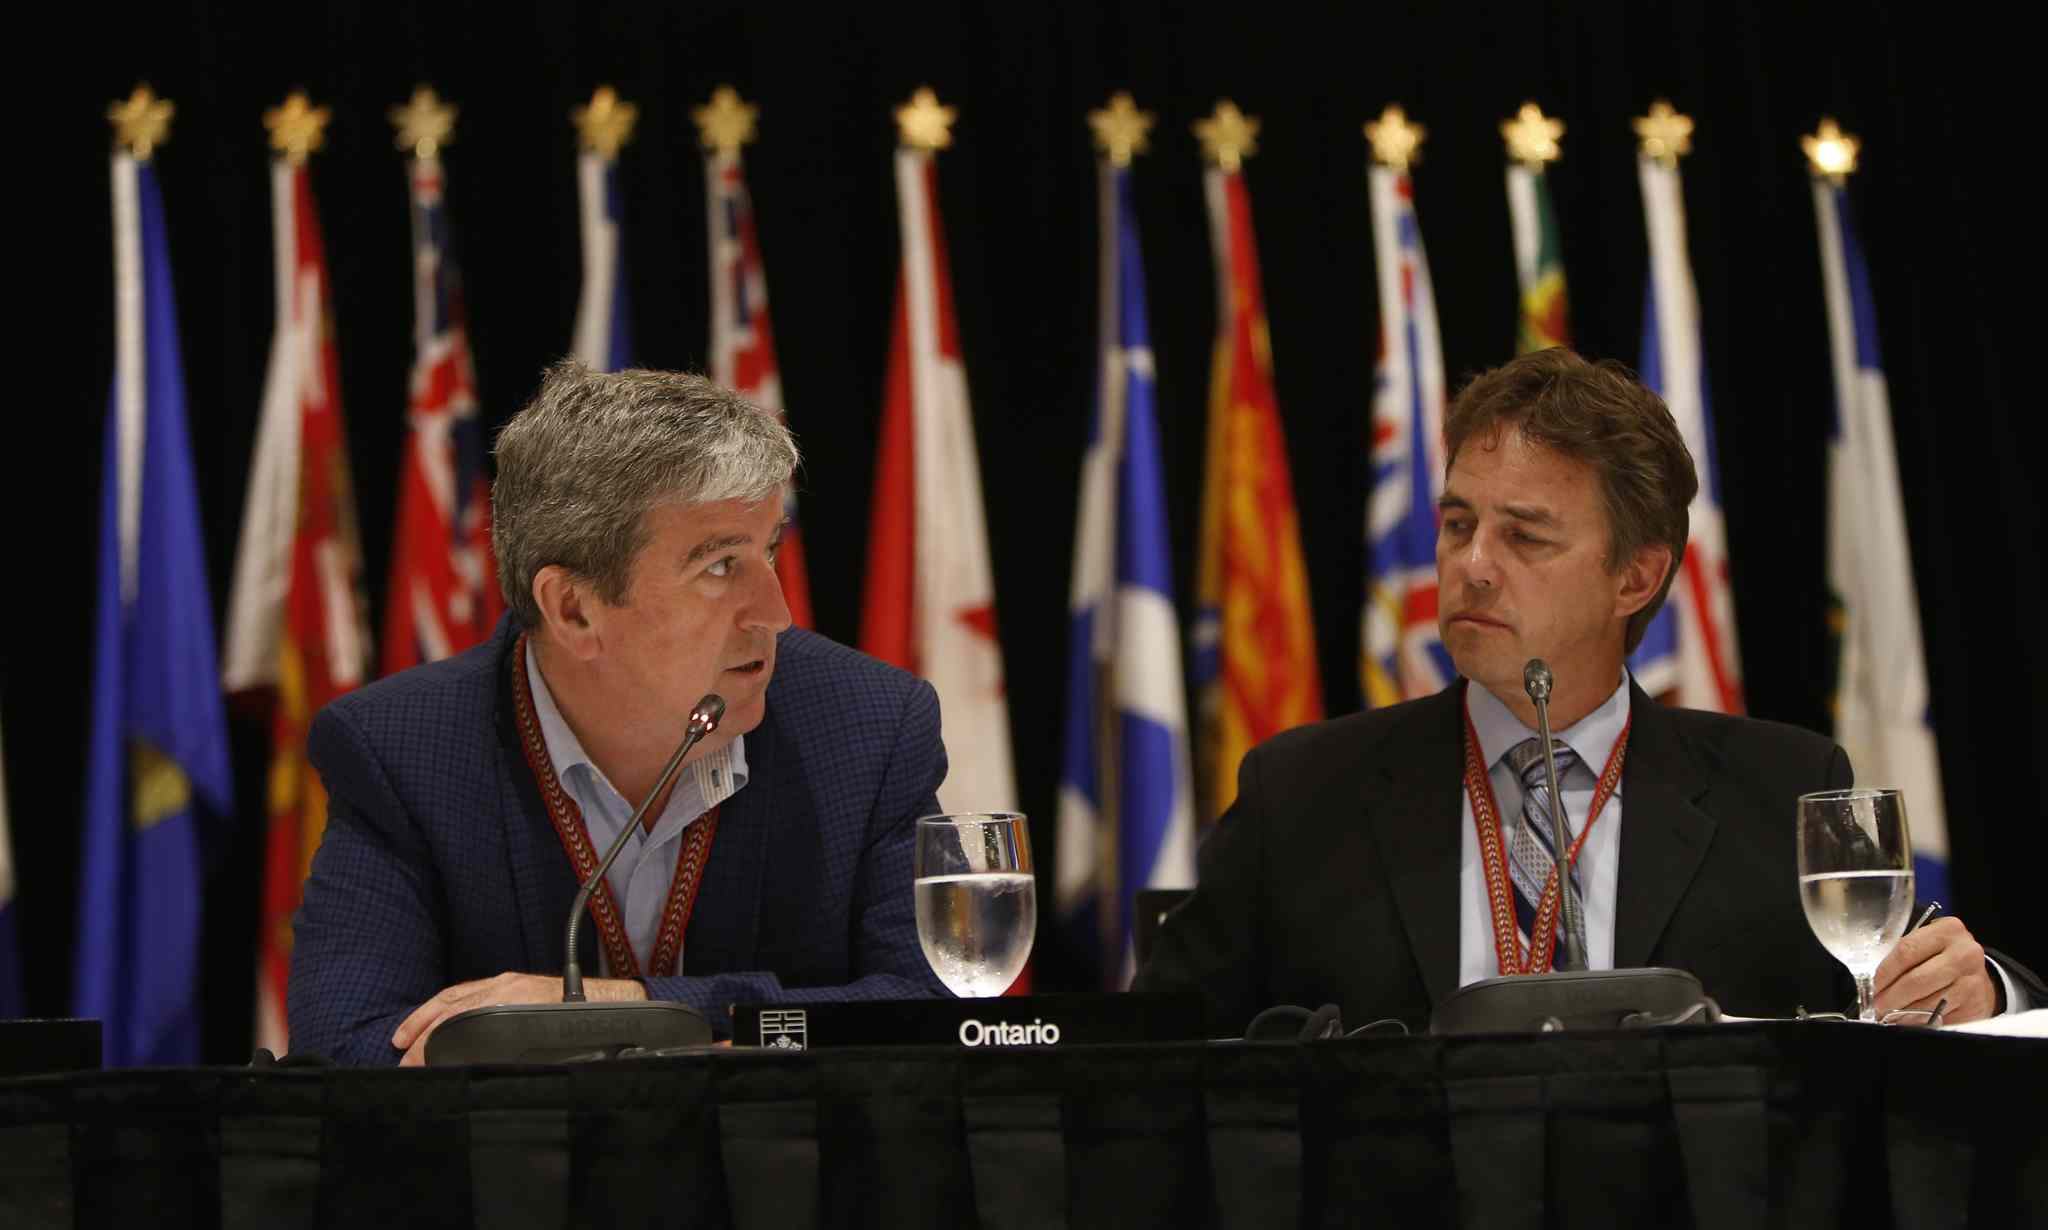 Manitoba Conservation and Water Stewardship Minister Tom Nevakshonoff (right) with Ontario counterpart Glen Murray.